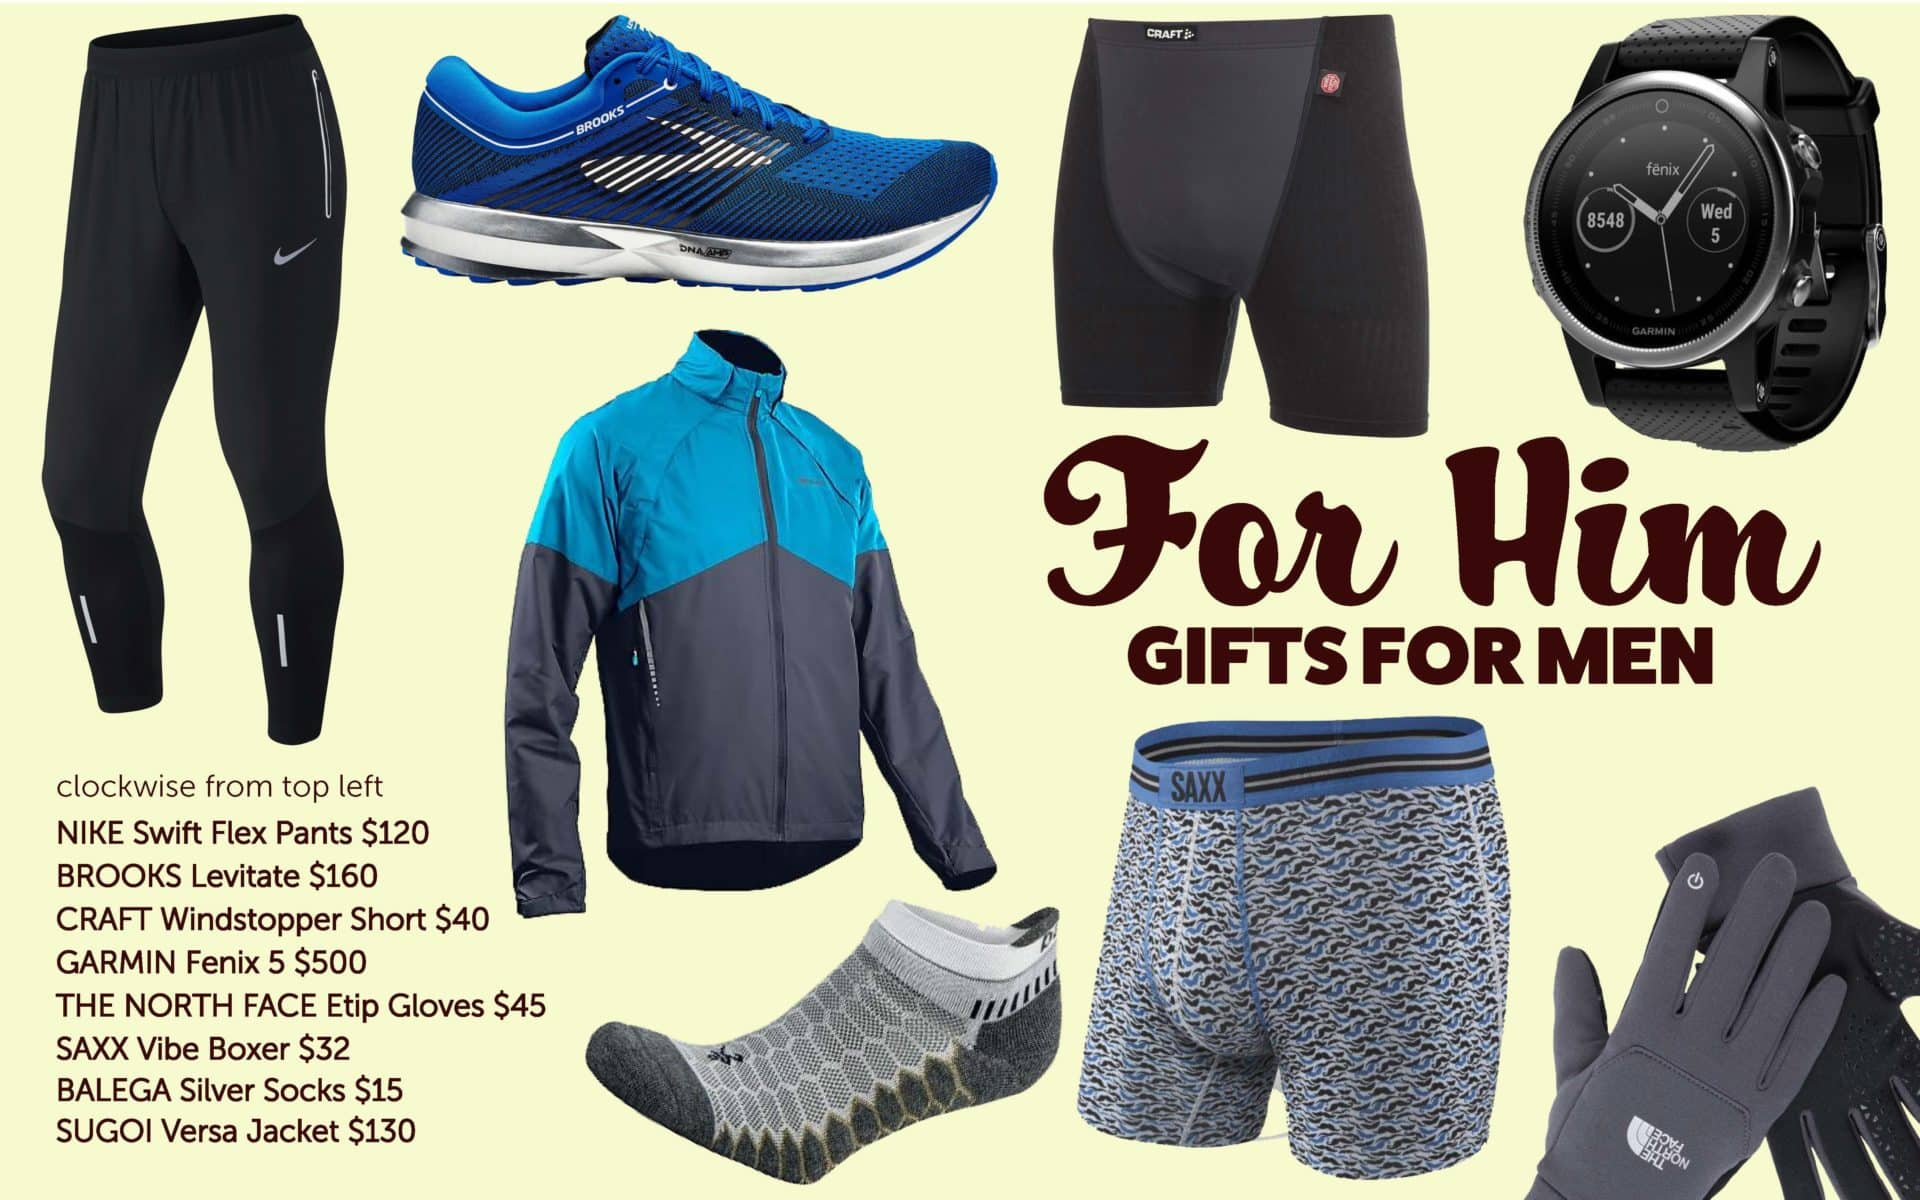 91d029dc83 It's easy to shop for the runner guy in your life with these great options!